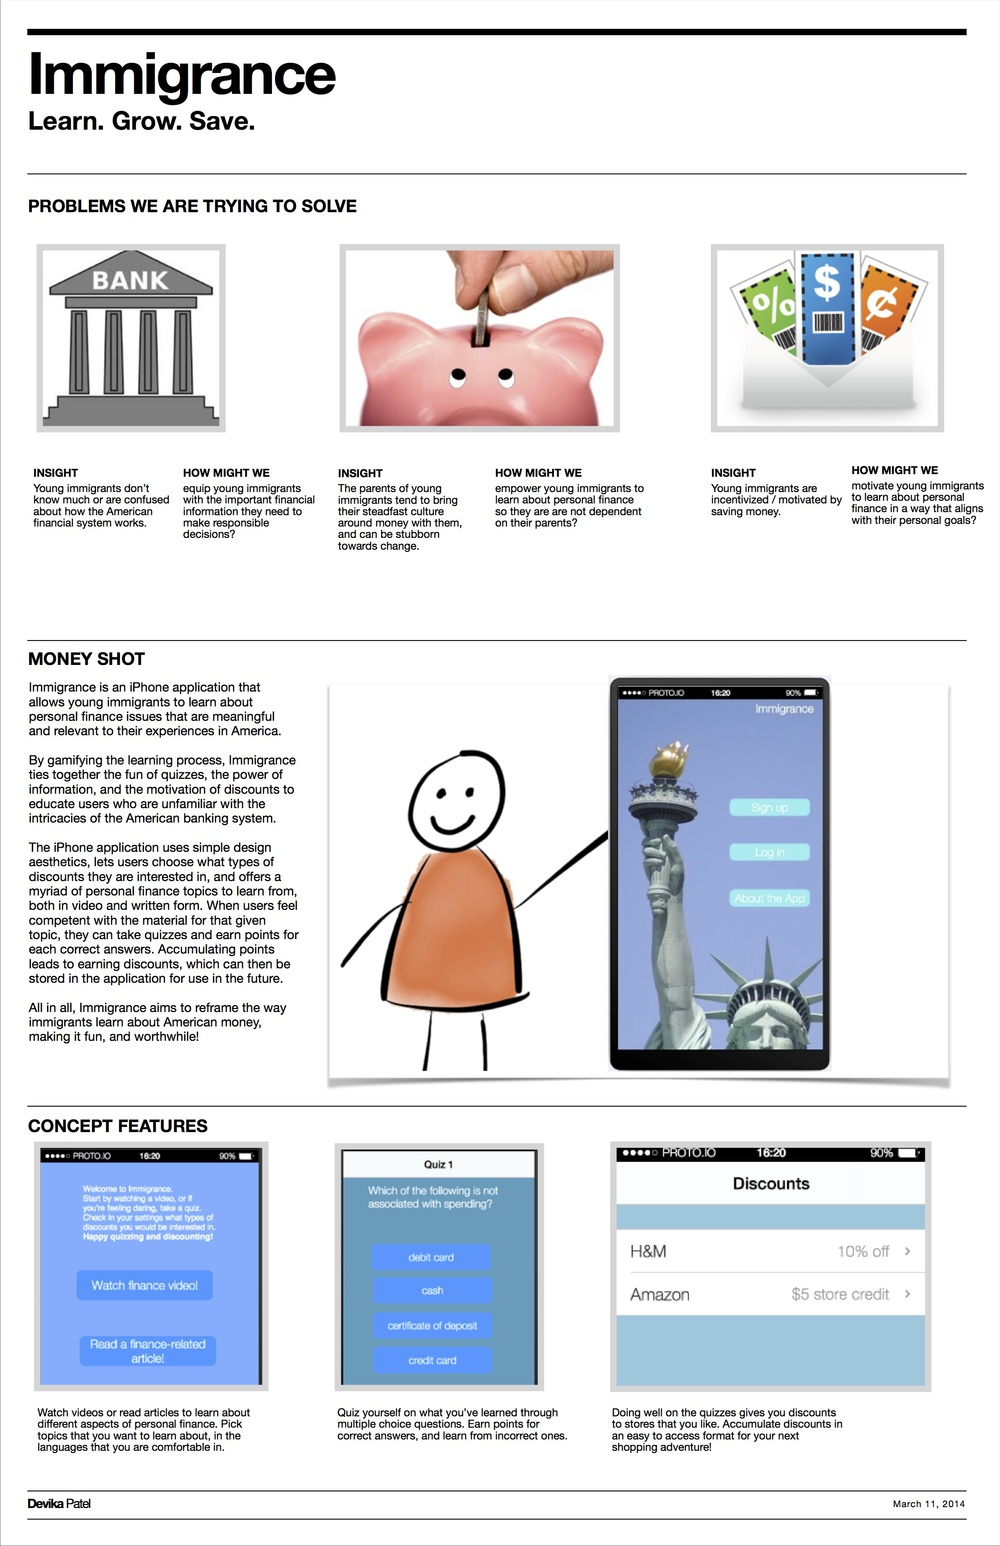 Immigrance Poster -- Compiling Insights, Product Description and Key Features